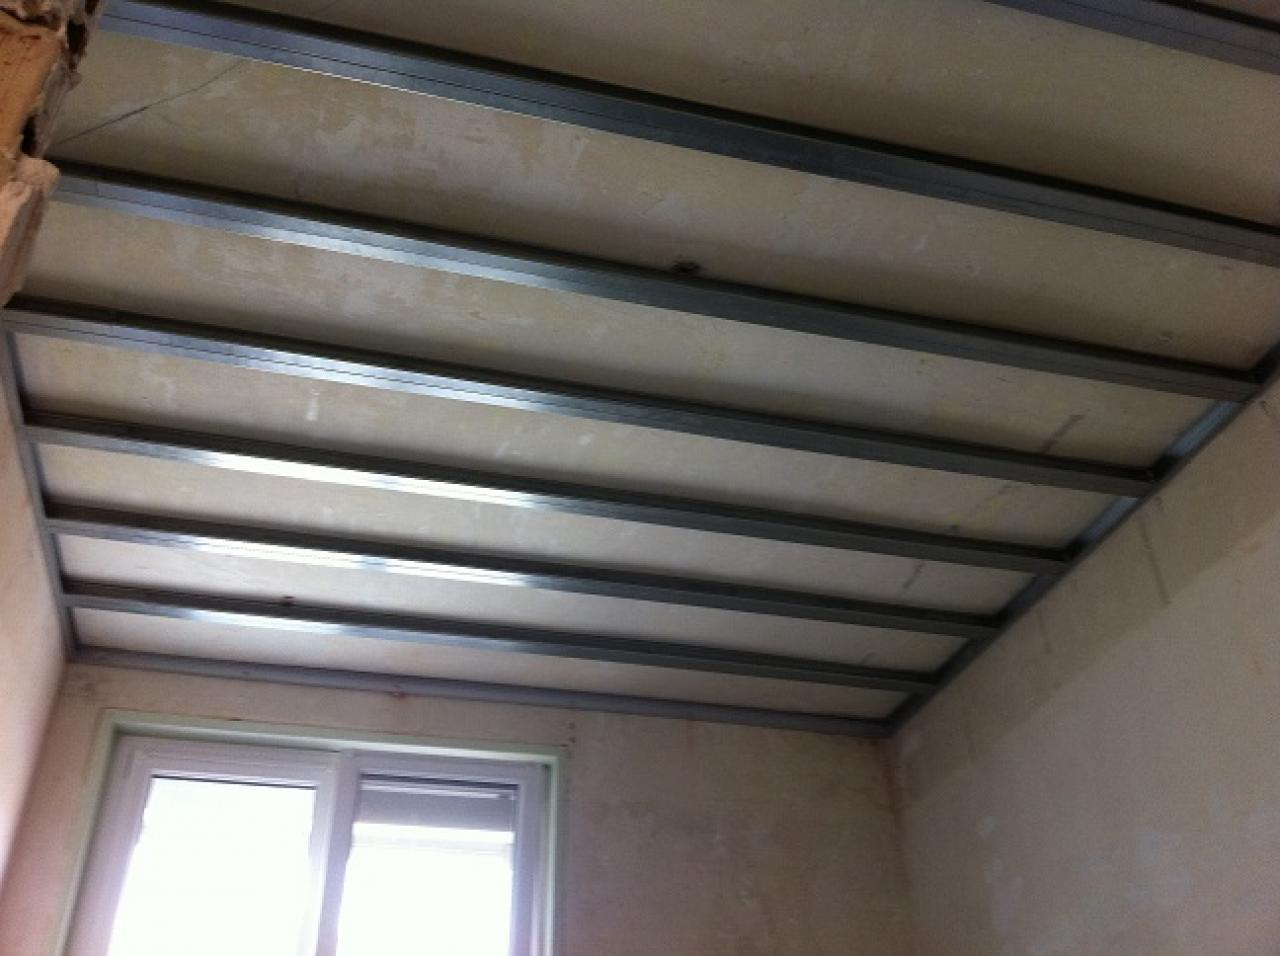 Types de rails et montants pour plafond autoporteur placo for Type de faux plafond